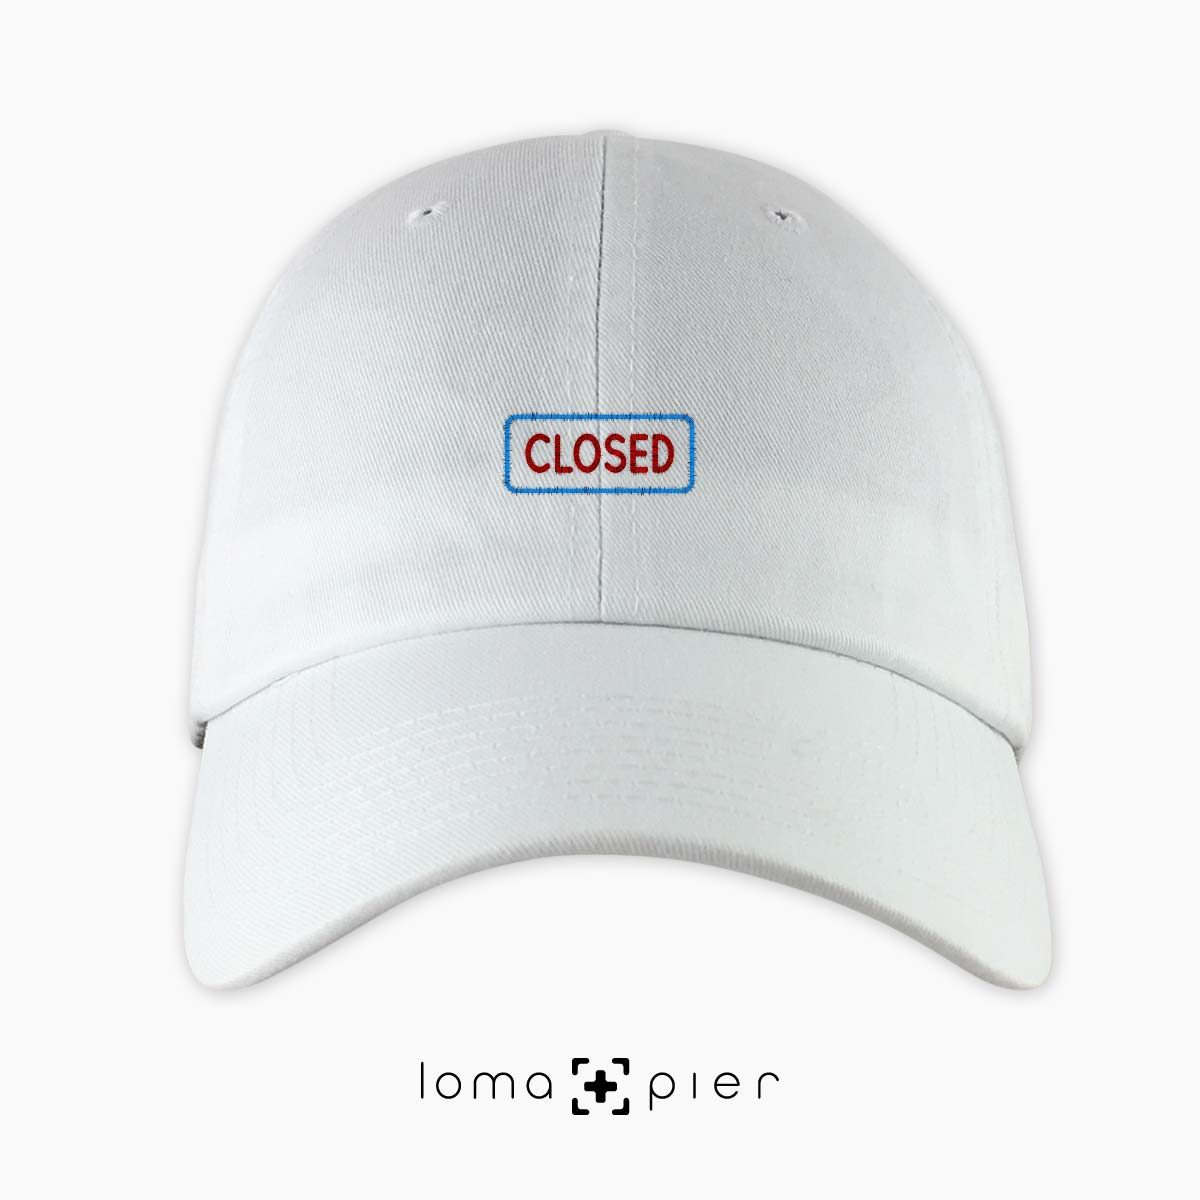 CLOSED SIGN dad hat in white by loma+pier hat store